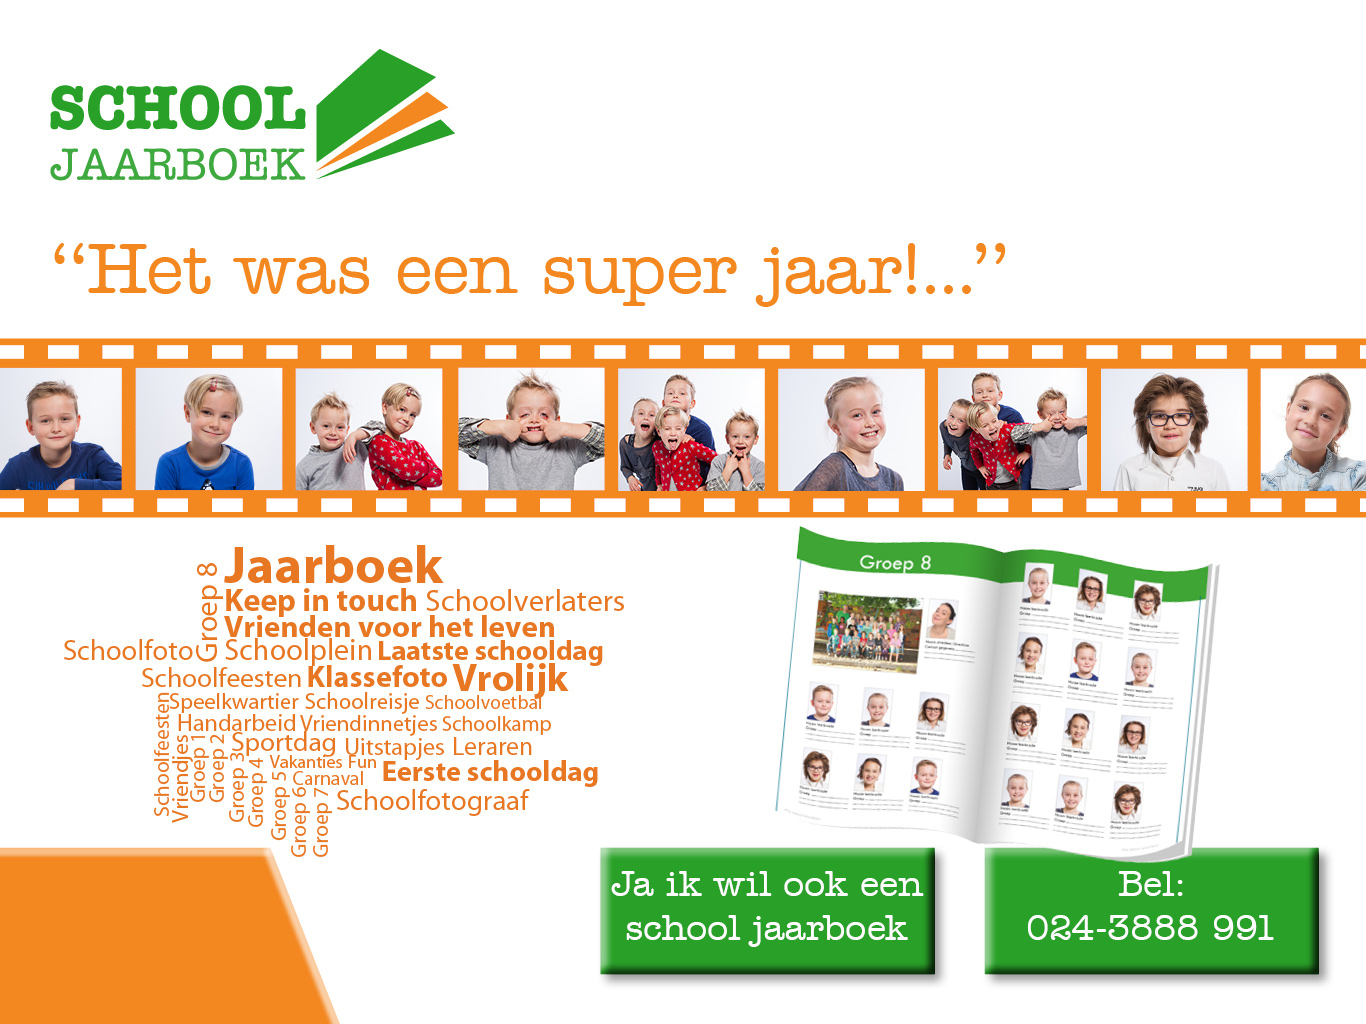 School jaarboek